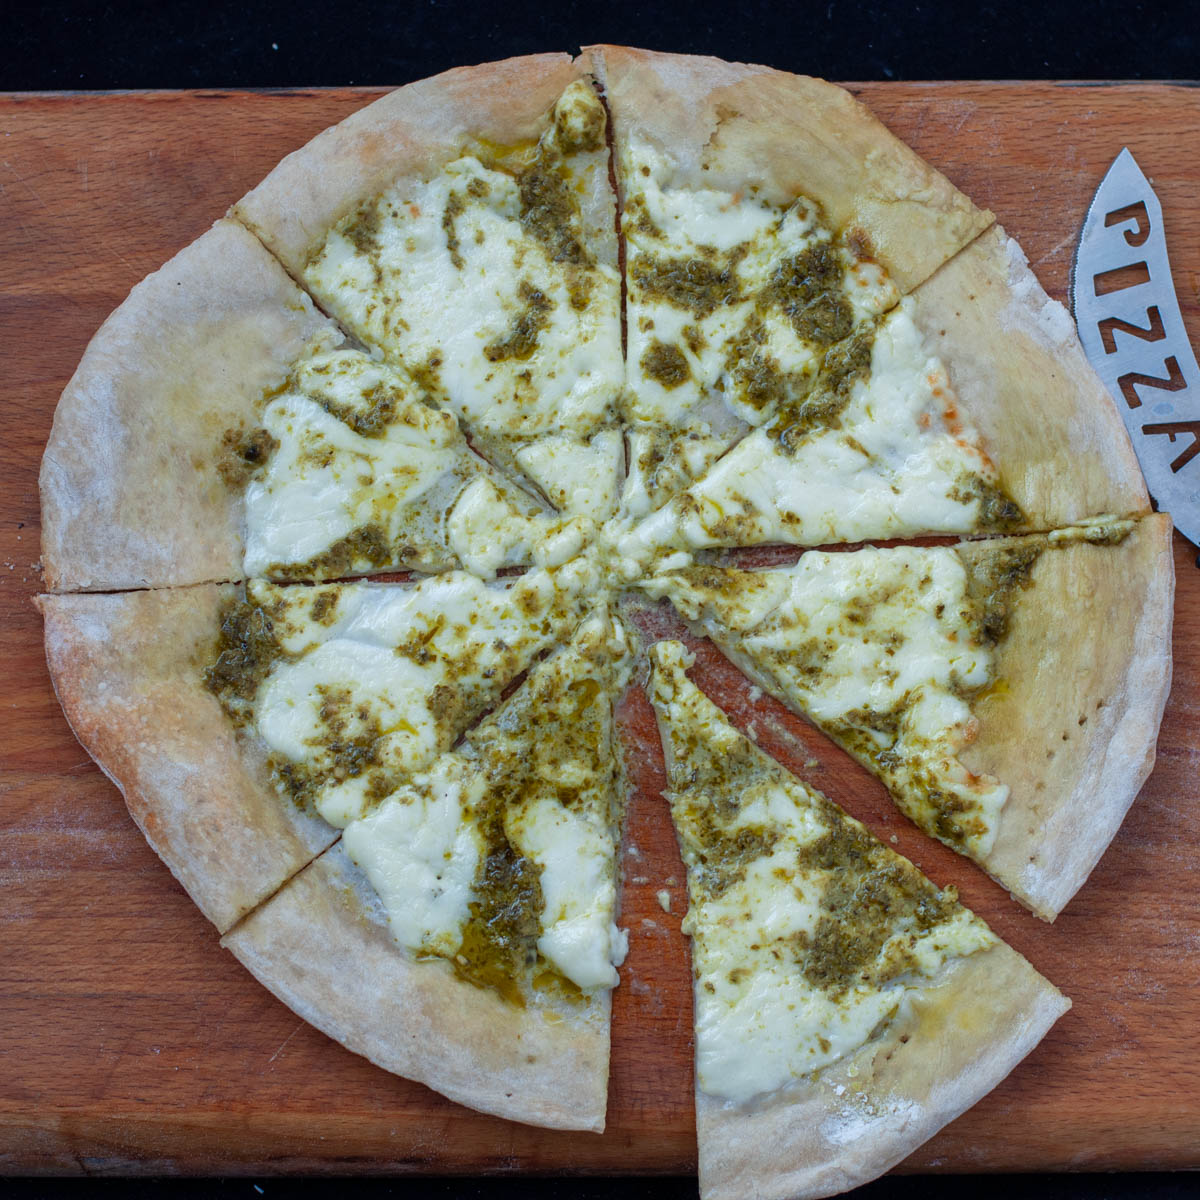 Traditional Italian White Pizza With Stracchino and Pesto